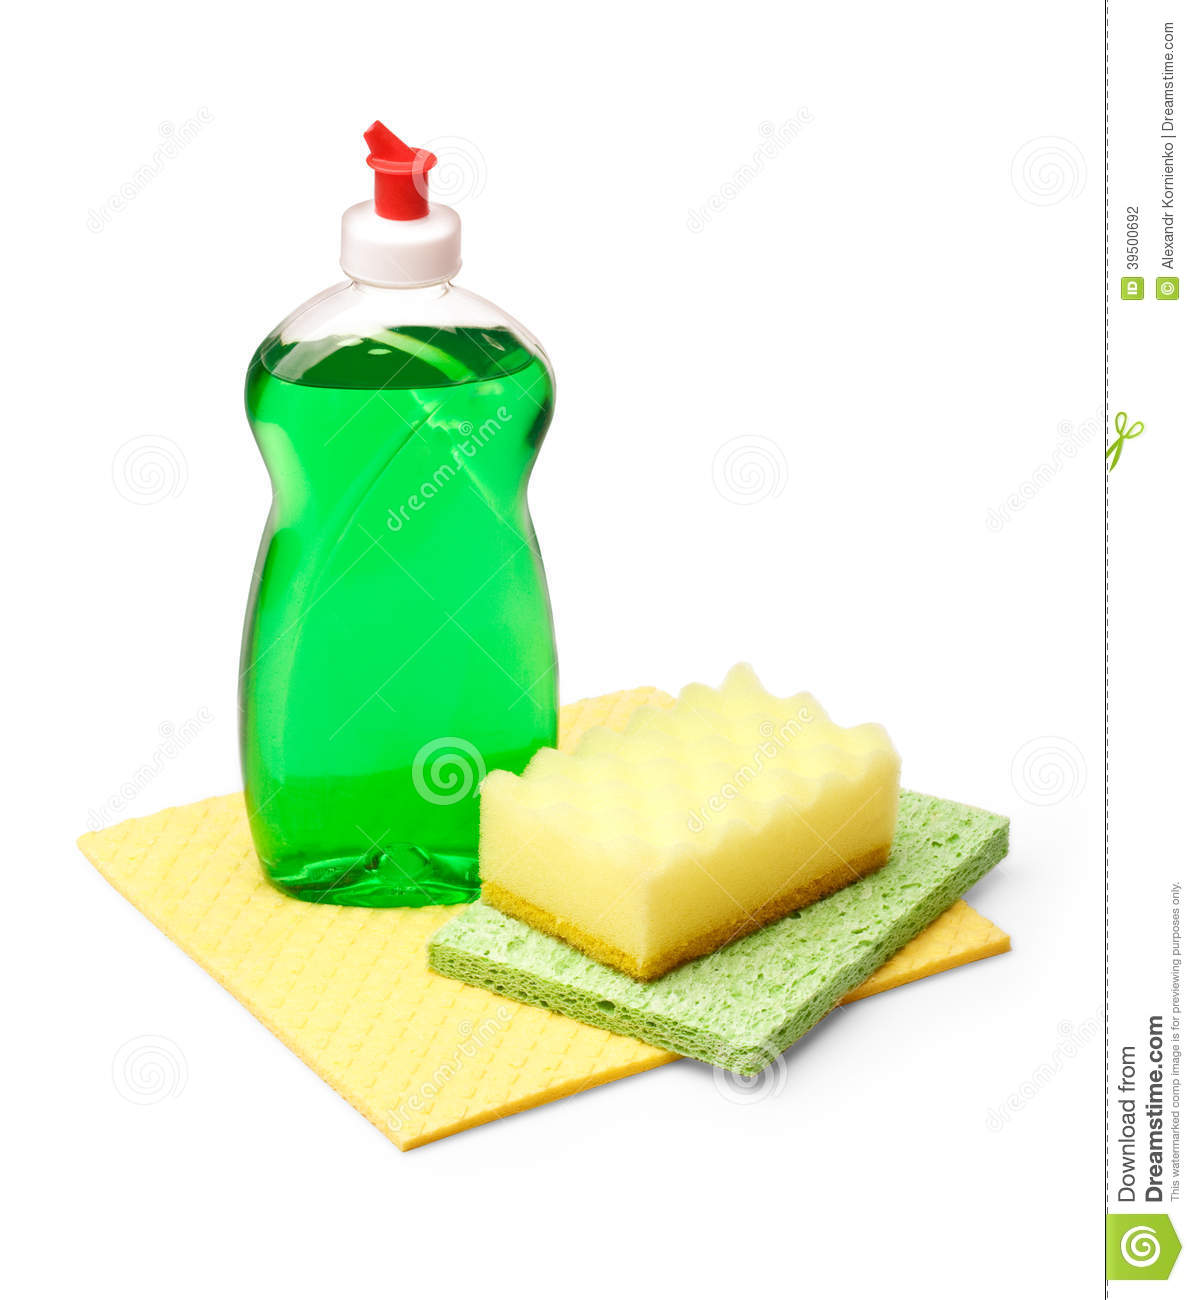 Cleaning products